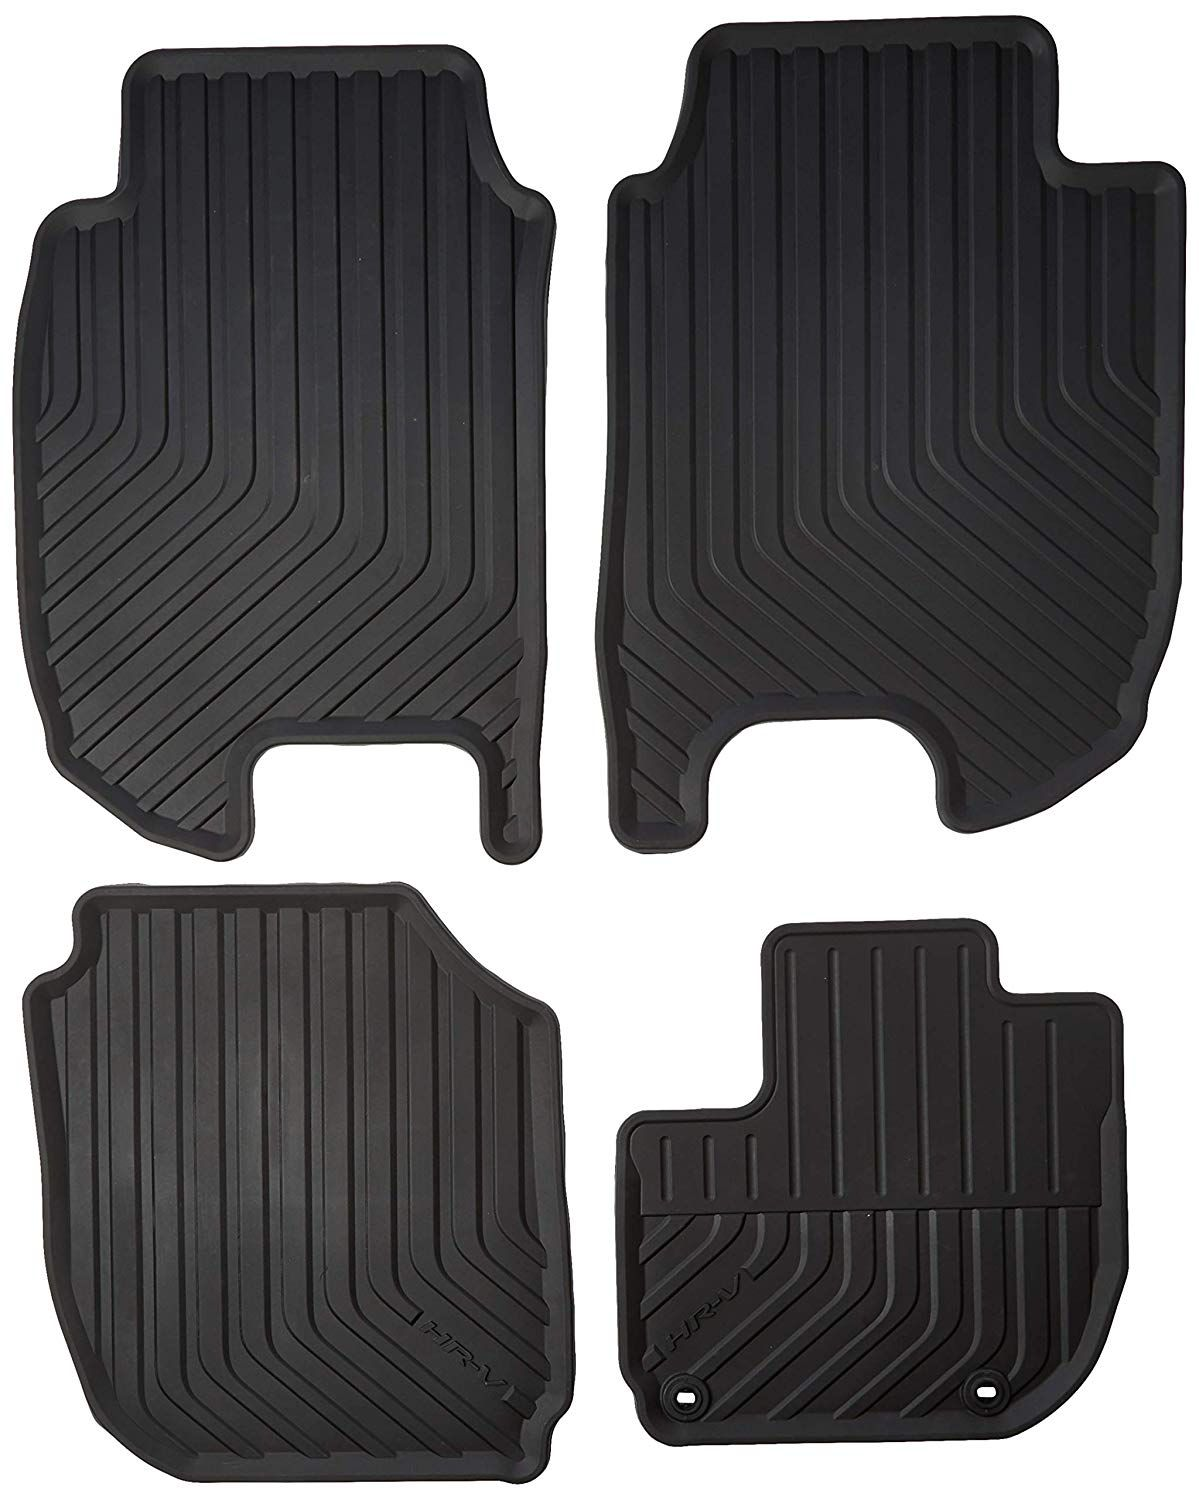 Honda Genuine 08p13 T7s 110 All Season Floor Mats Want To Know More Click On The Image This Is An Affiliate Link Floor Mats Flooring Mats